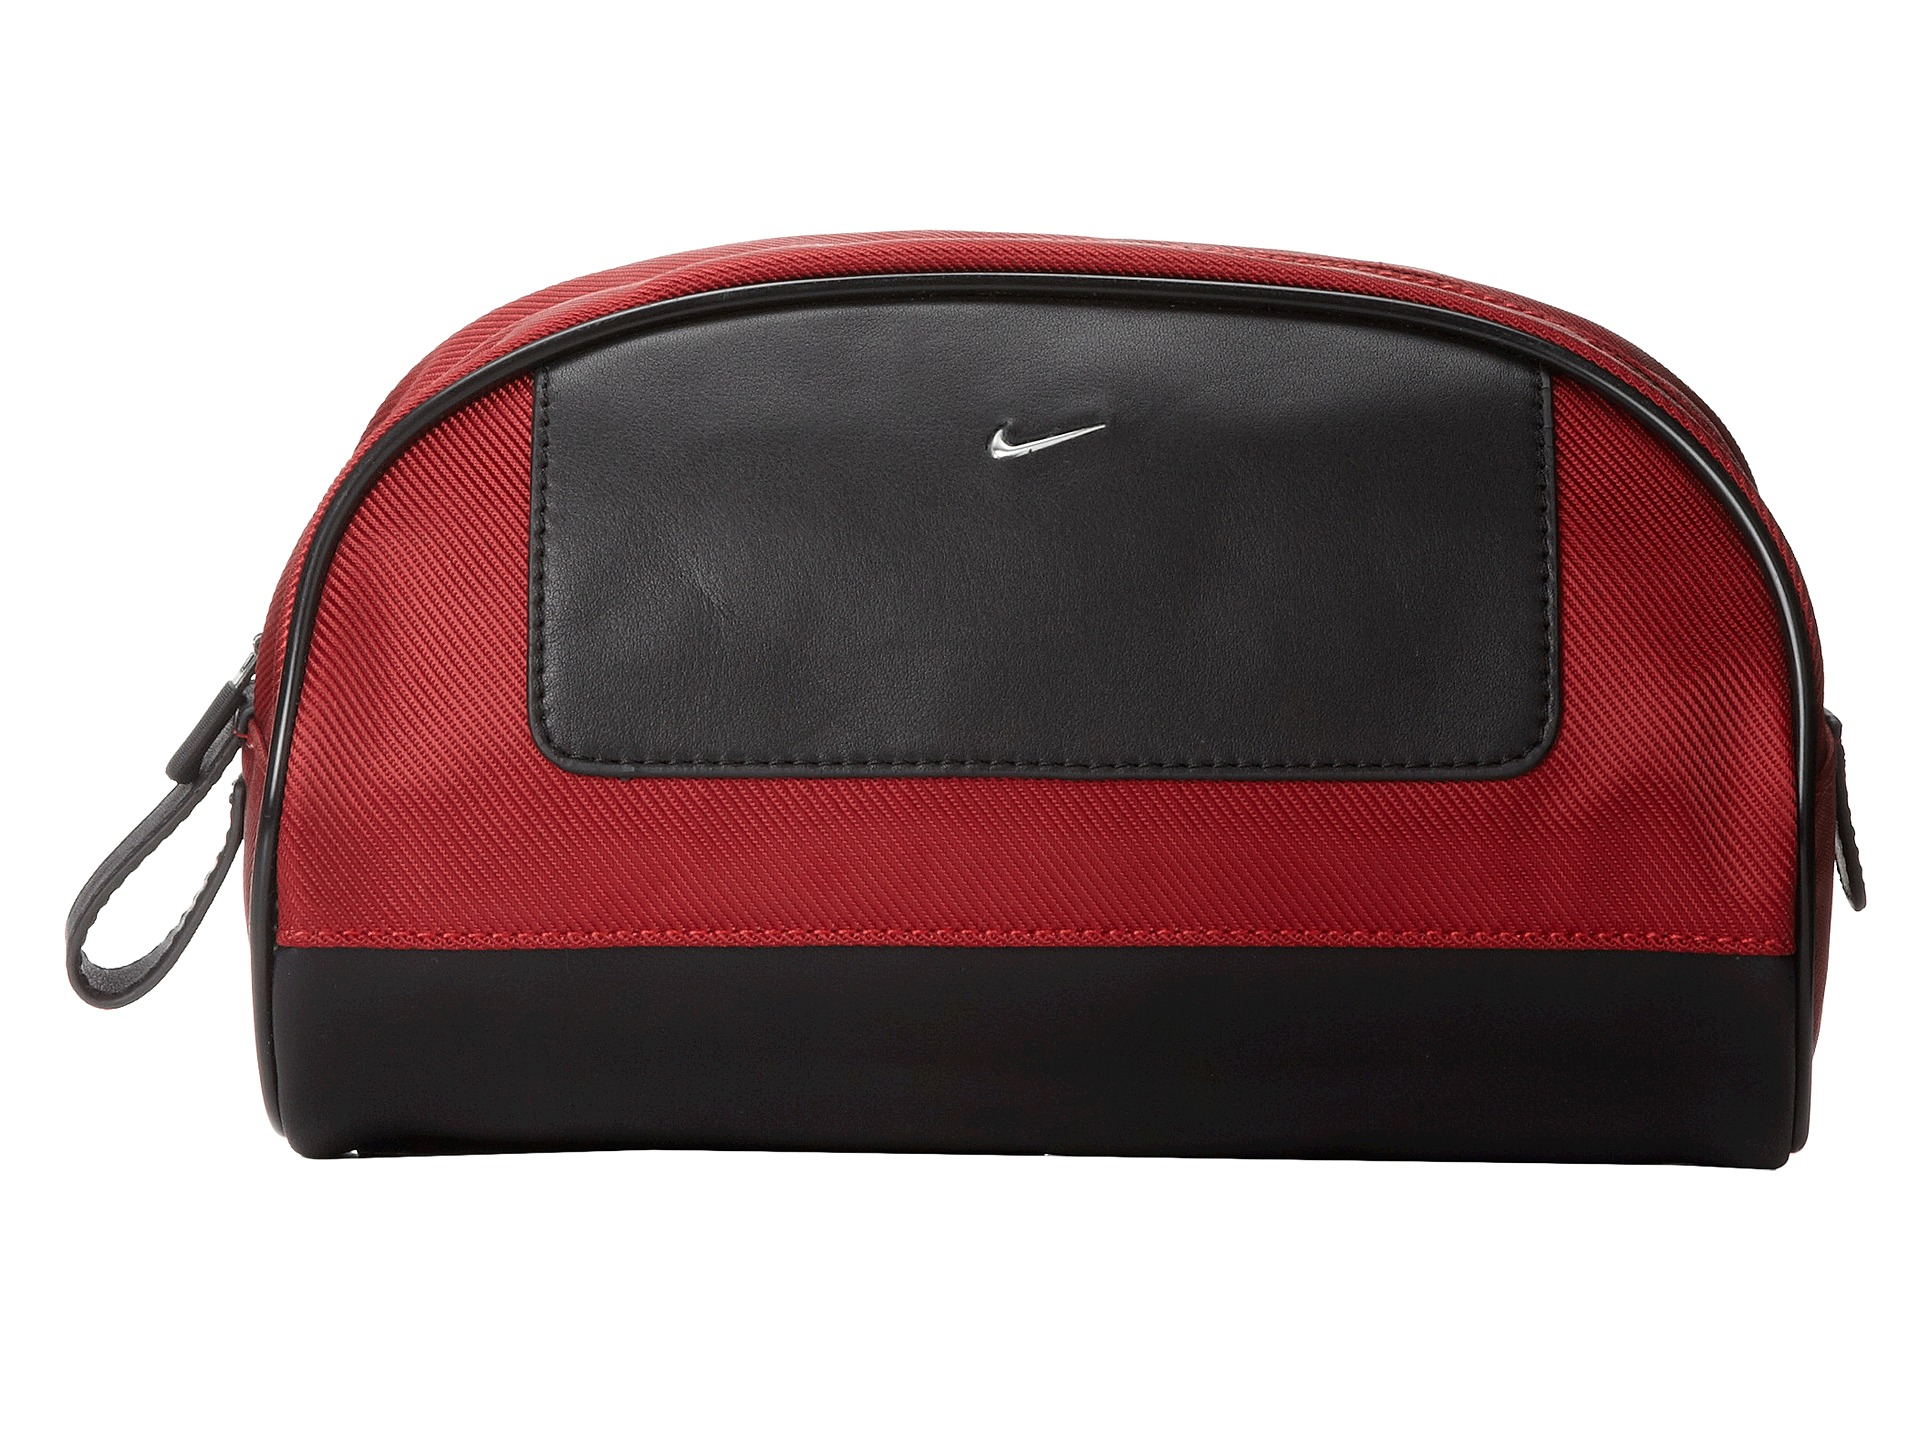 762a8628ff Lyst - Nike Leather tech Twill Travel Kit in Red for Men